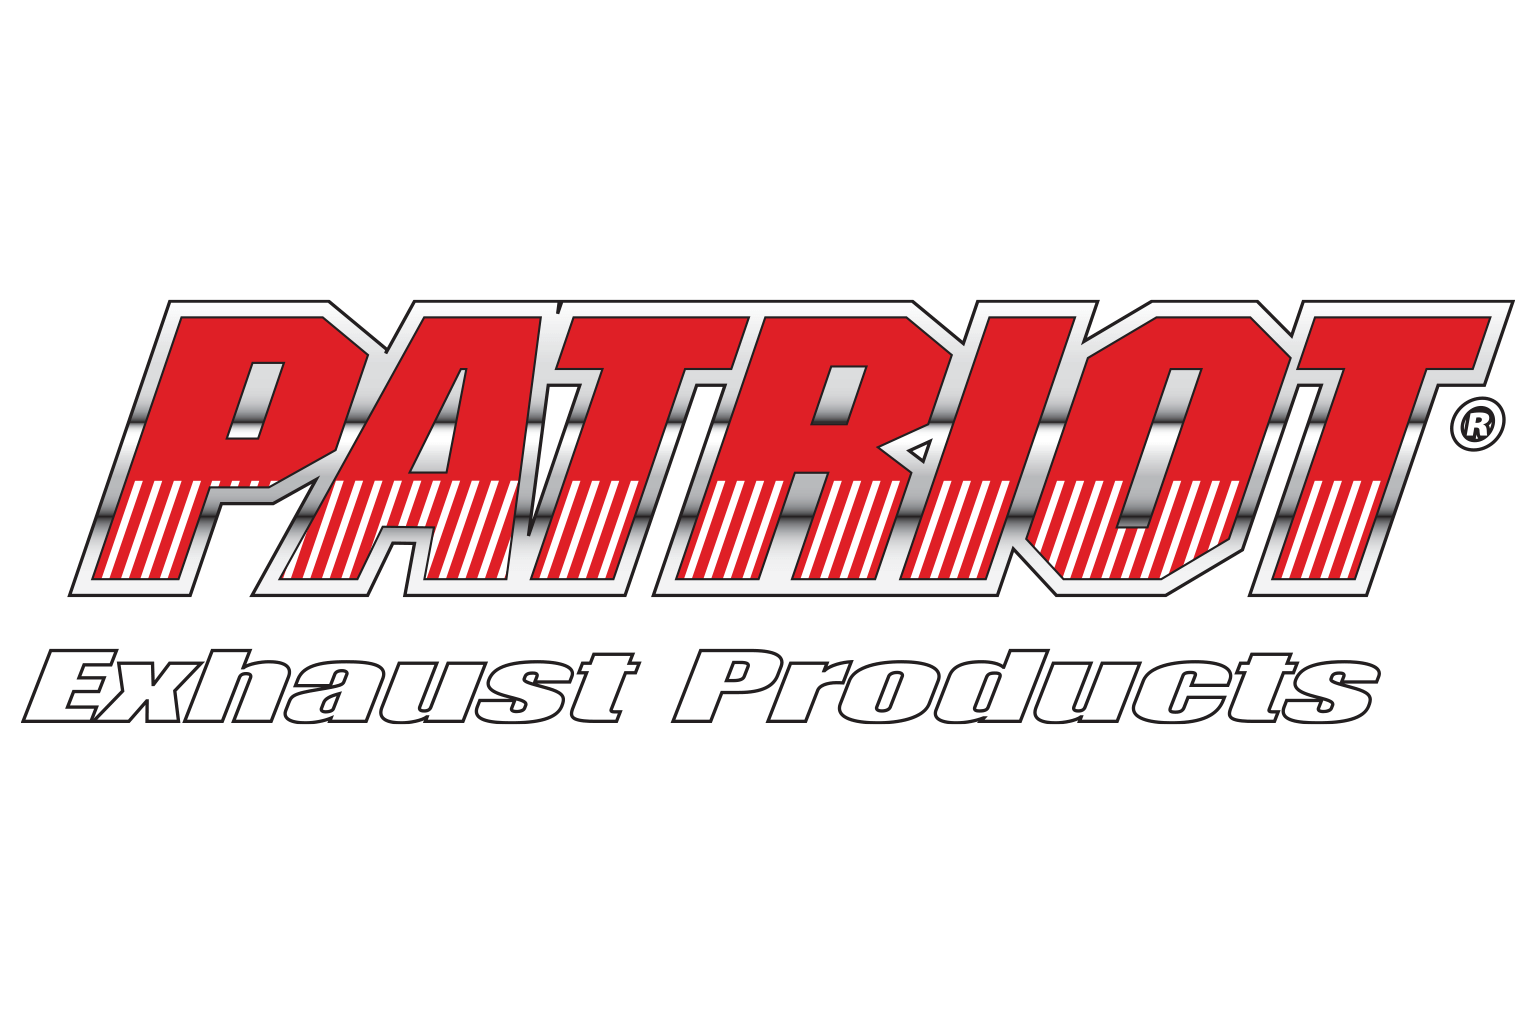 Patriot Exhaust